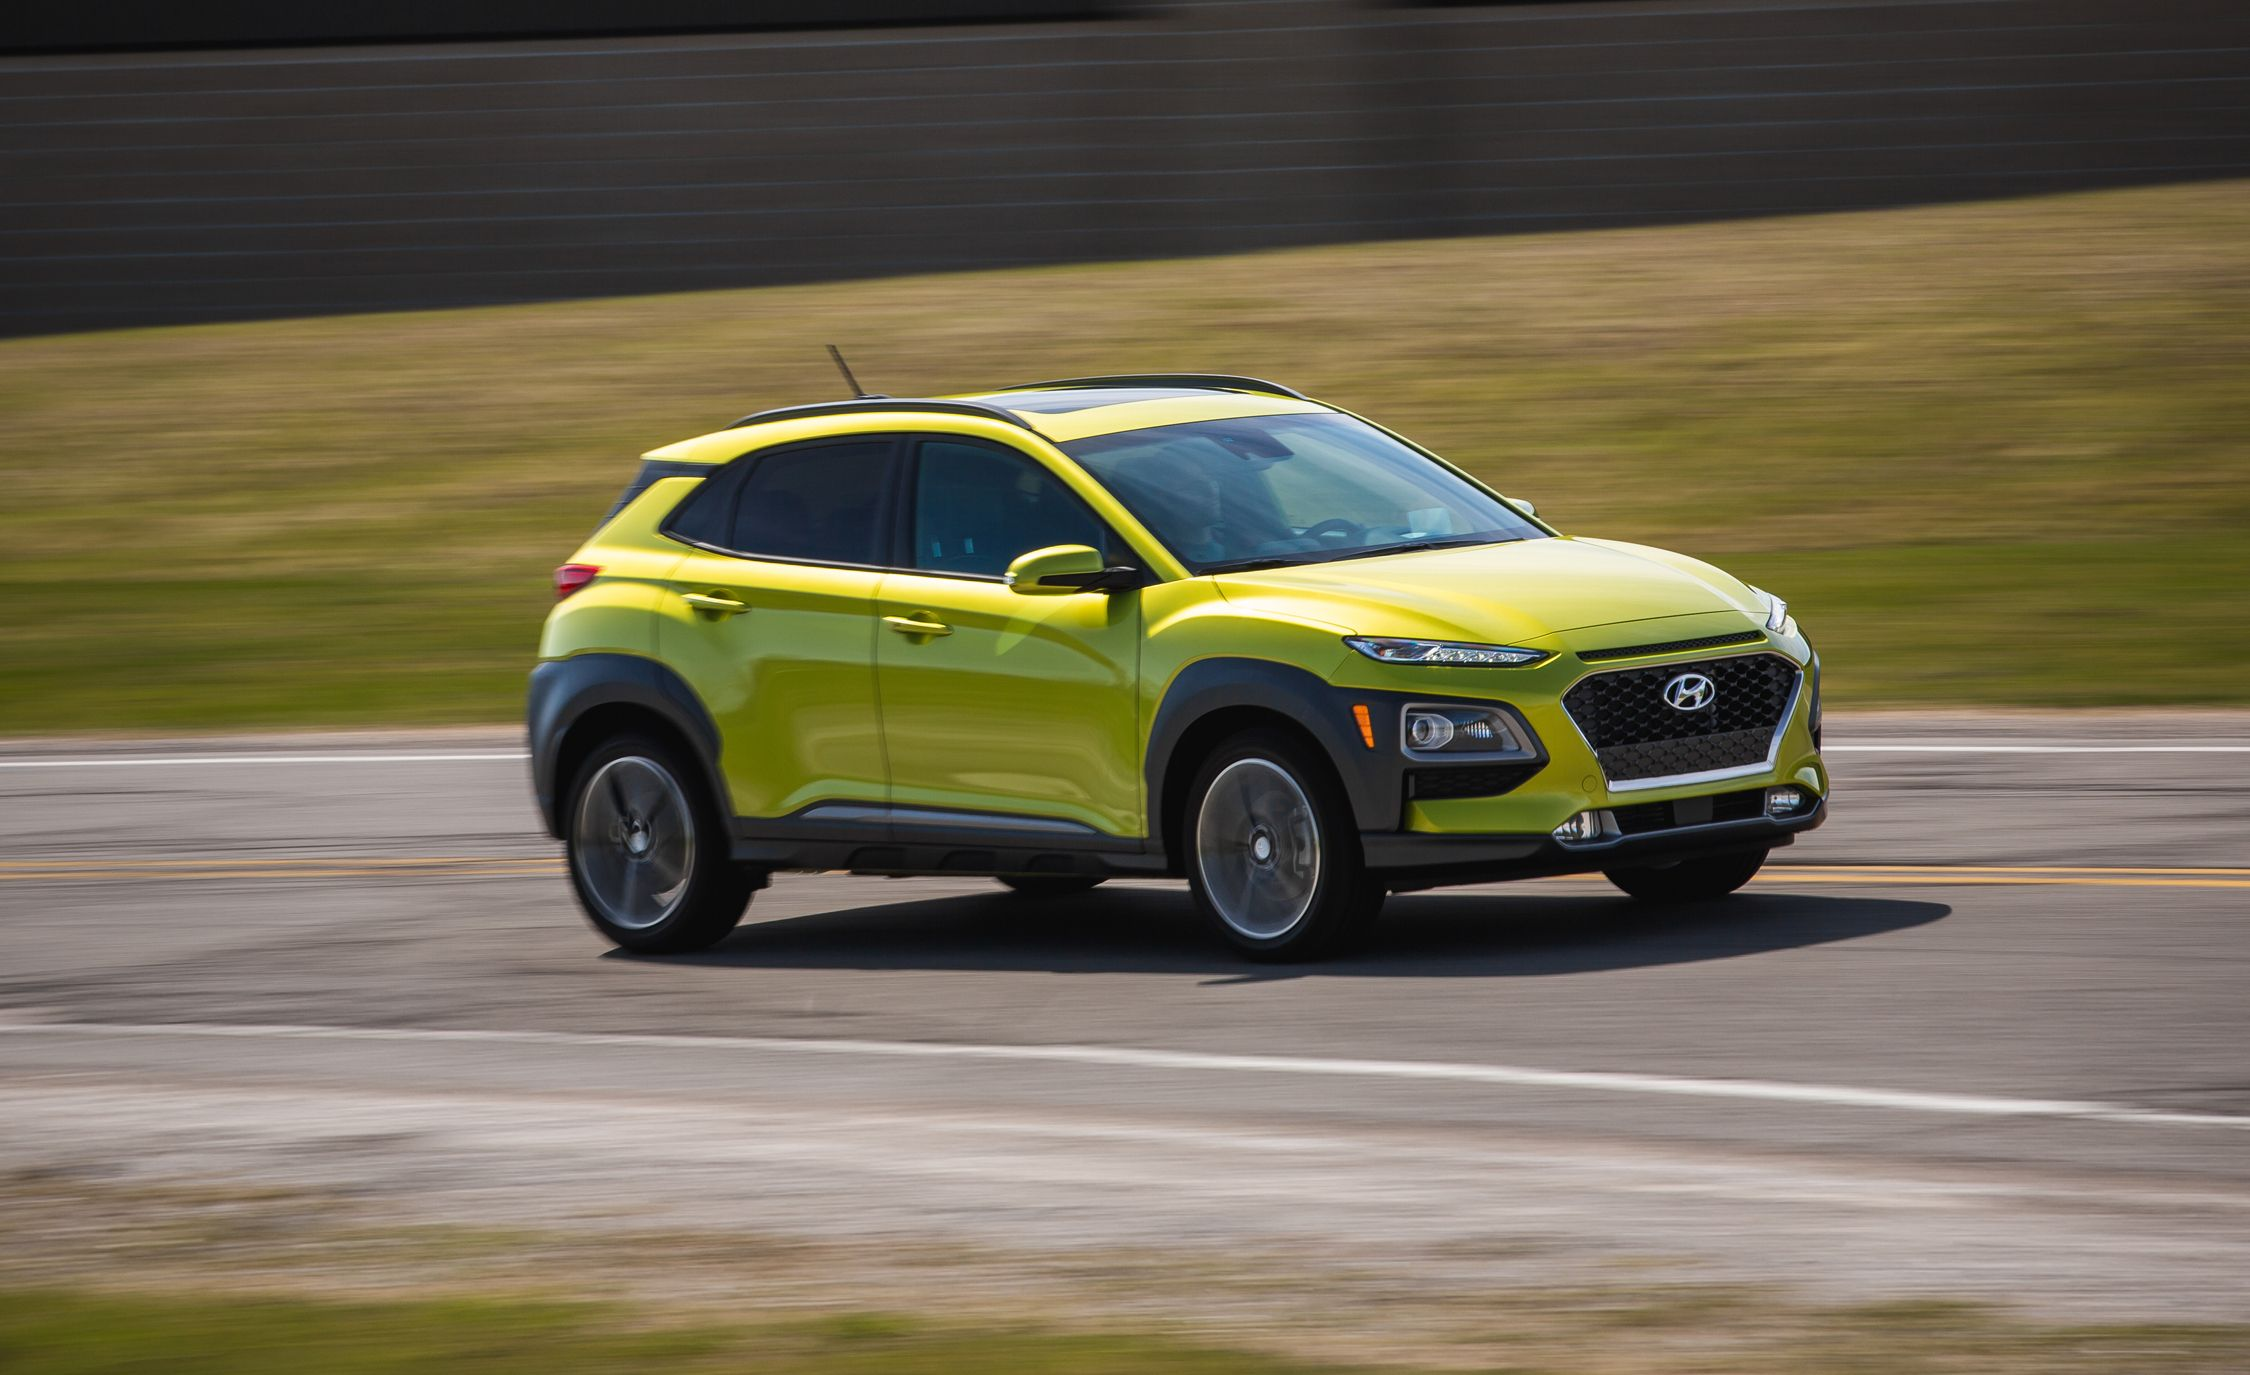 2018 hyundai kona 1 6l turbo awd test it s actually fun review car and driver. Black Bedroom Furniture Sets. Home Design Ideas